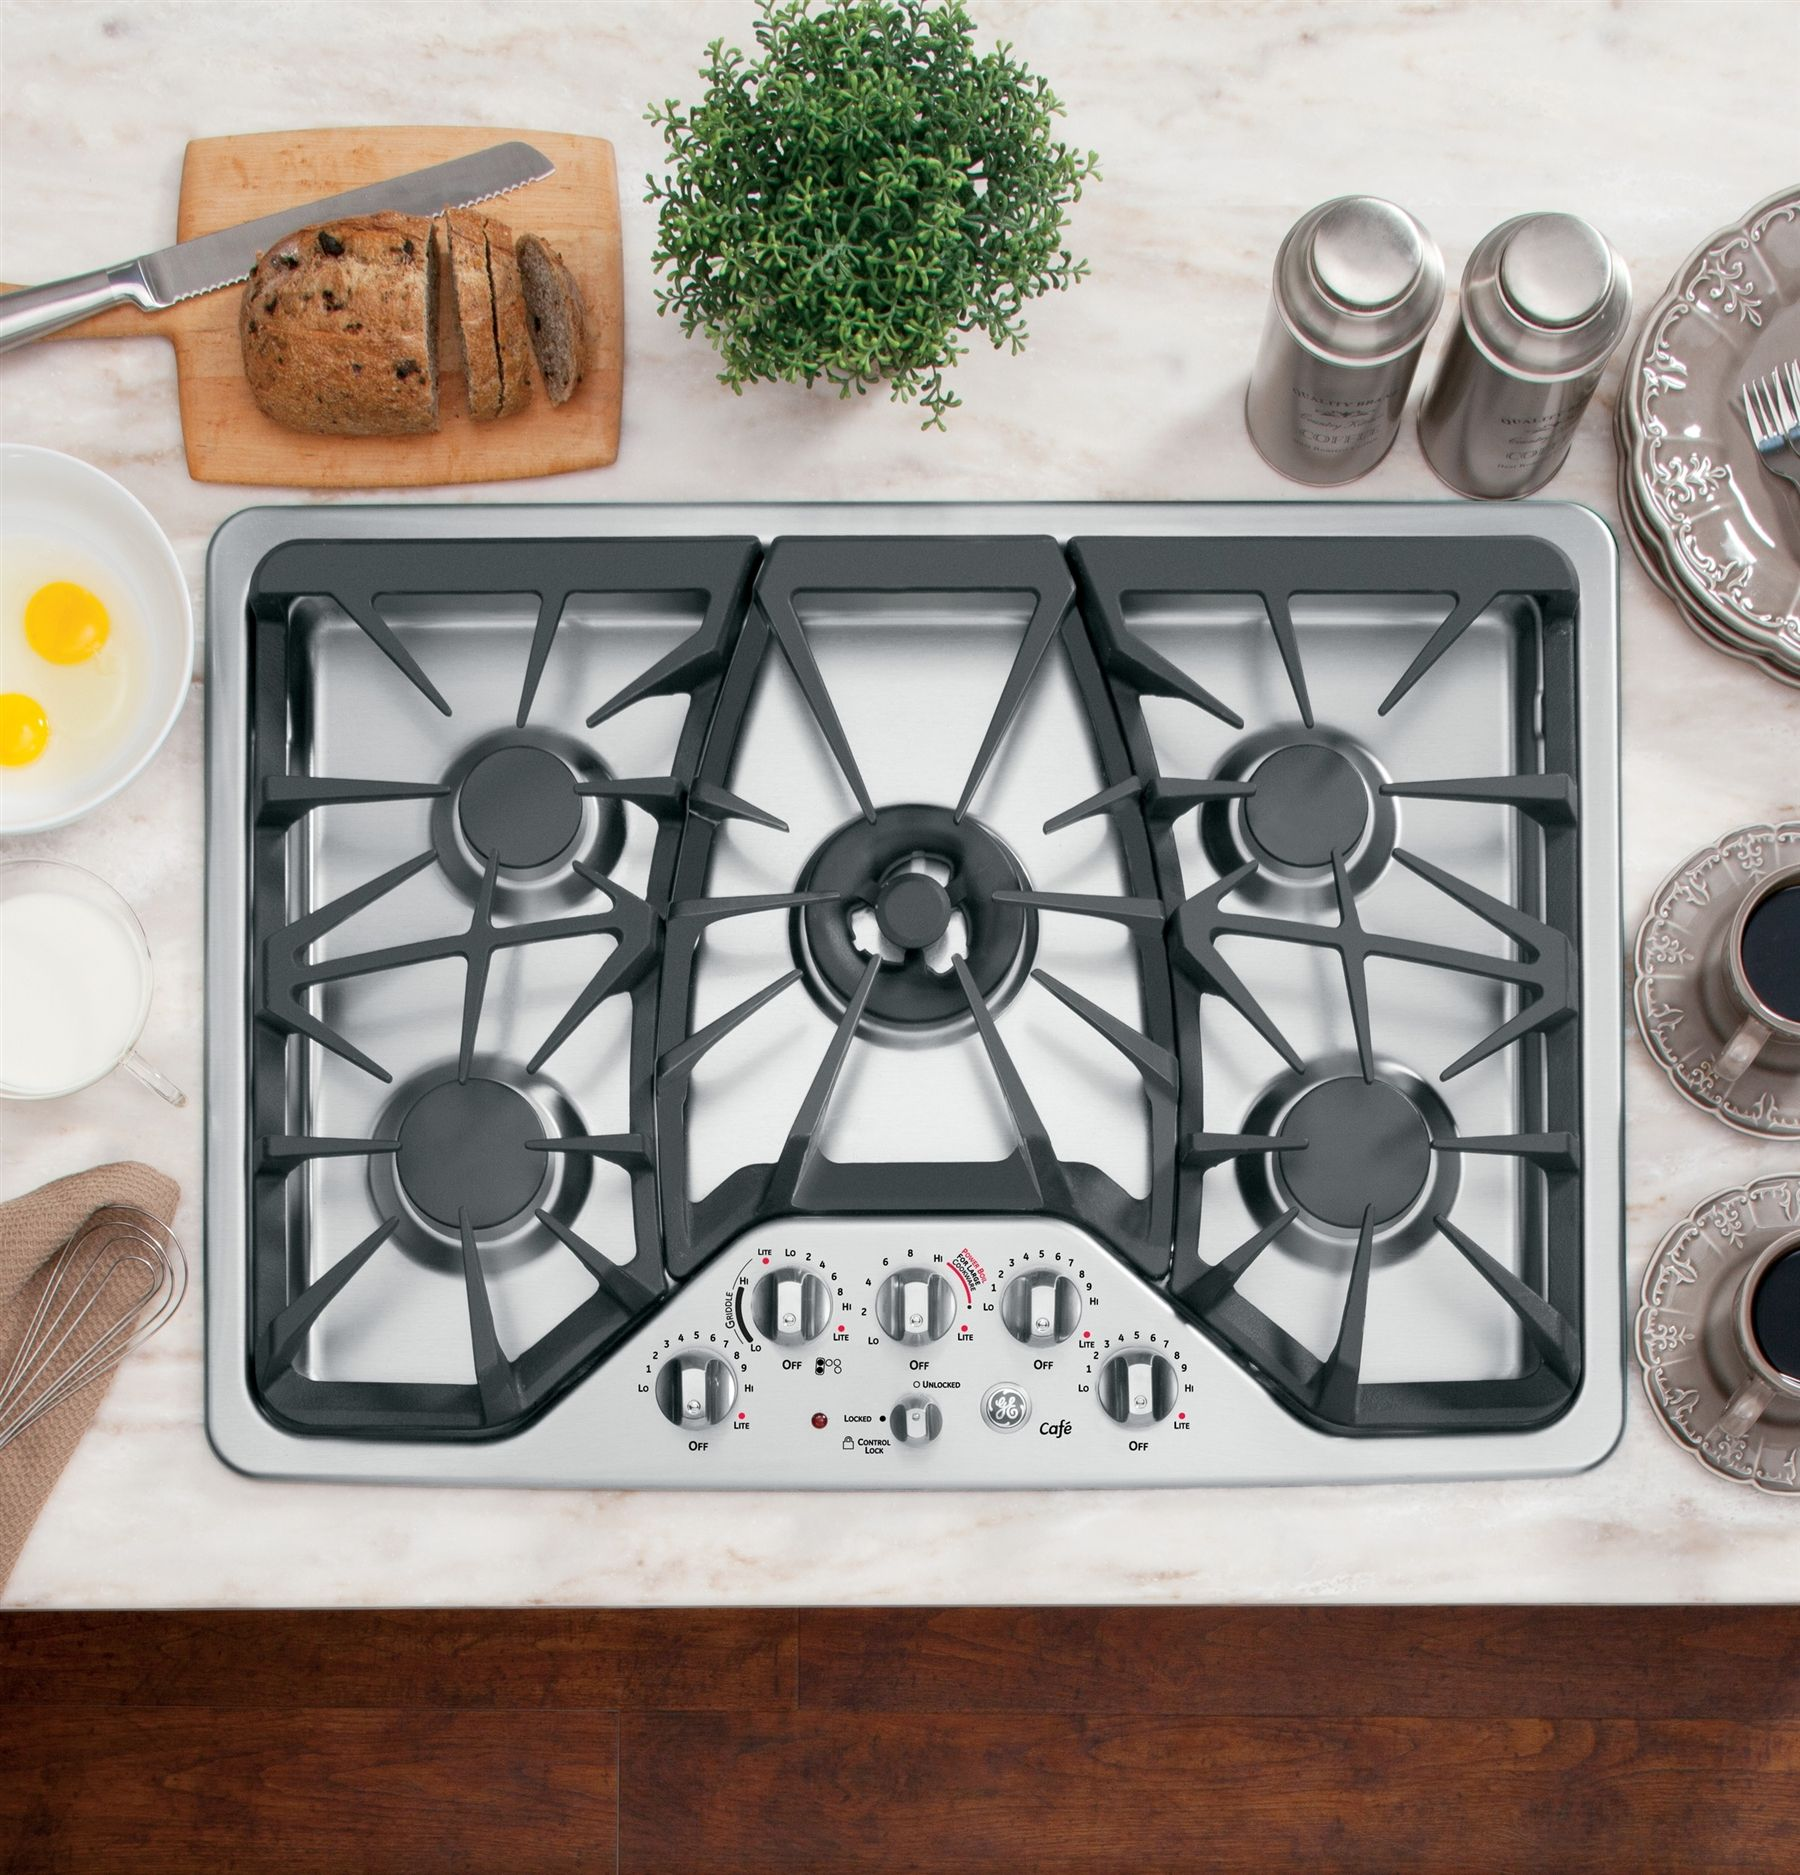 Thinking About Getting A New Gas Cooktop This One Is Near The Top Of My List It Has Some Pretty Good Reviews Ge Pro Gas Cooktop Cooktop Kitchen Appliances